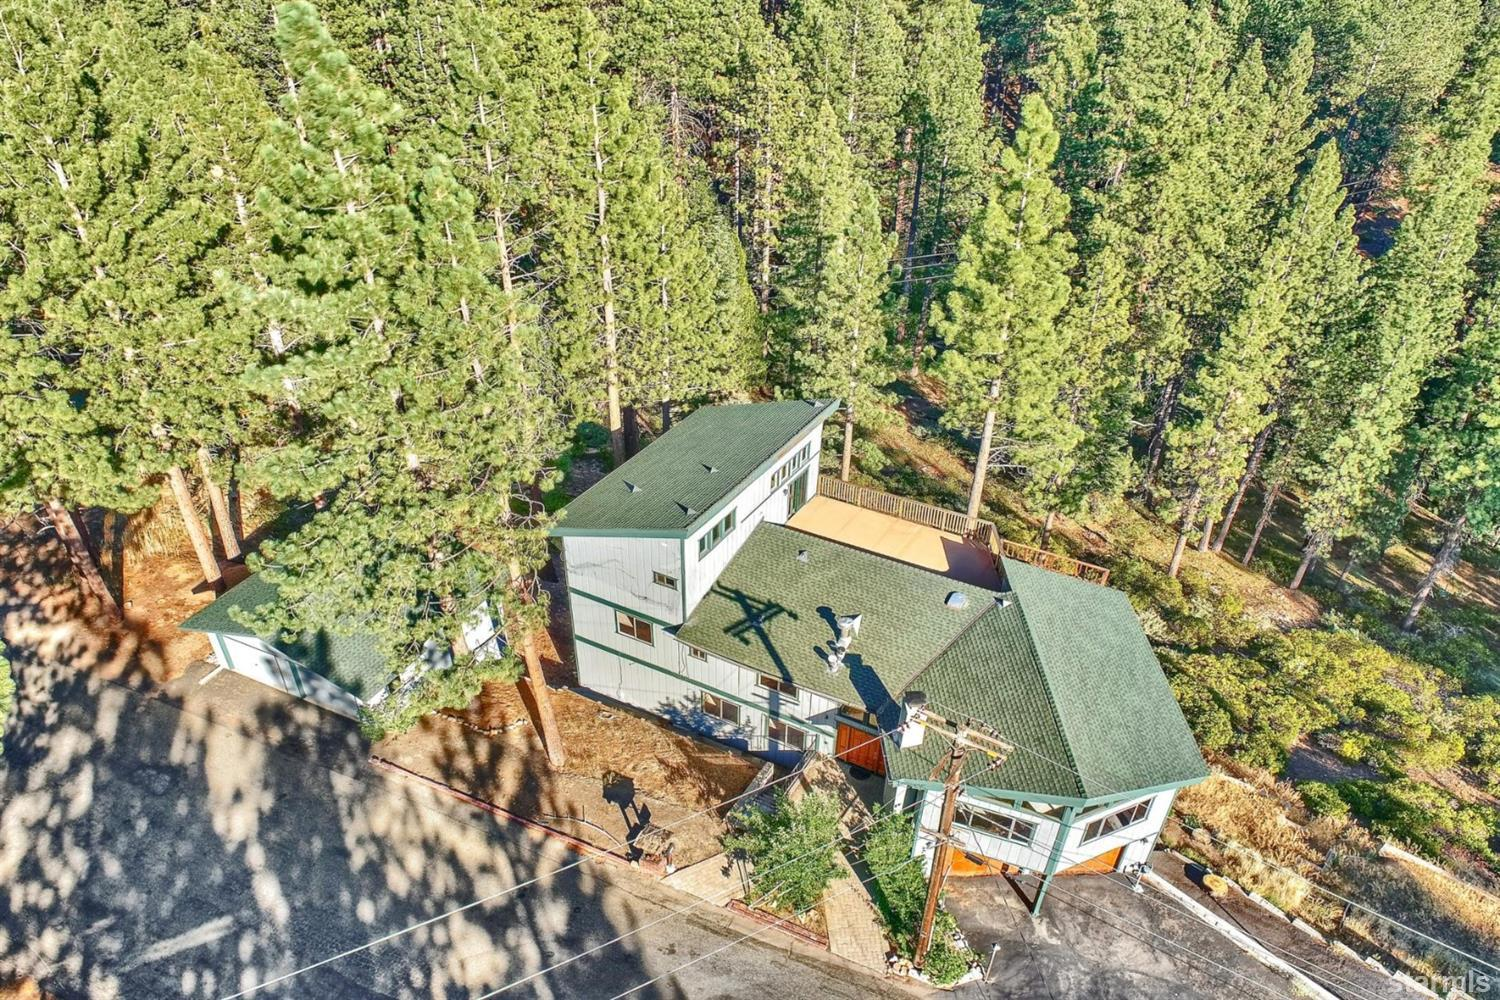 Image for 2221 Del Norte Street, South Lake Tahoe, CA 96150